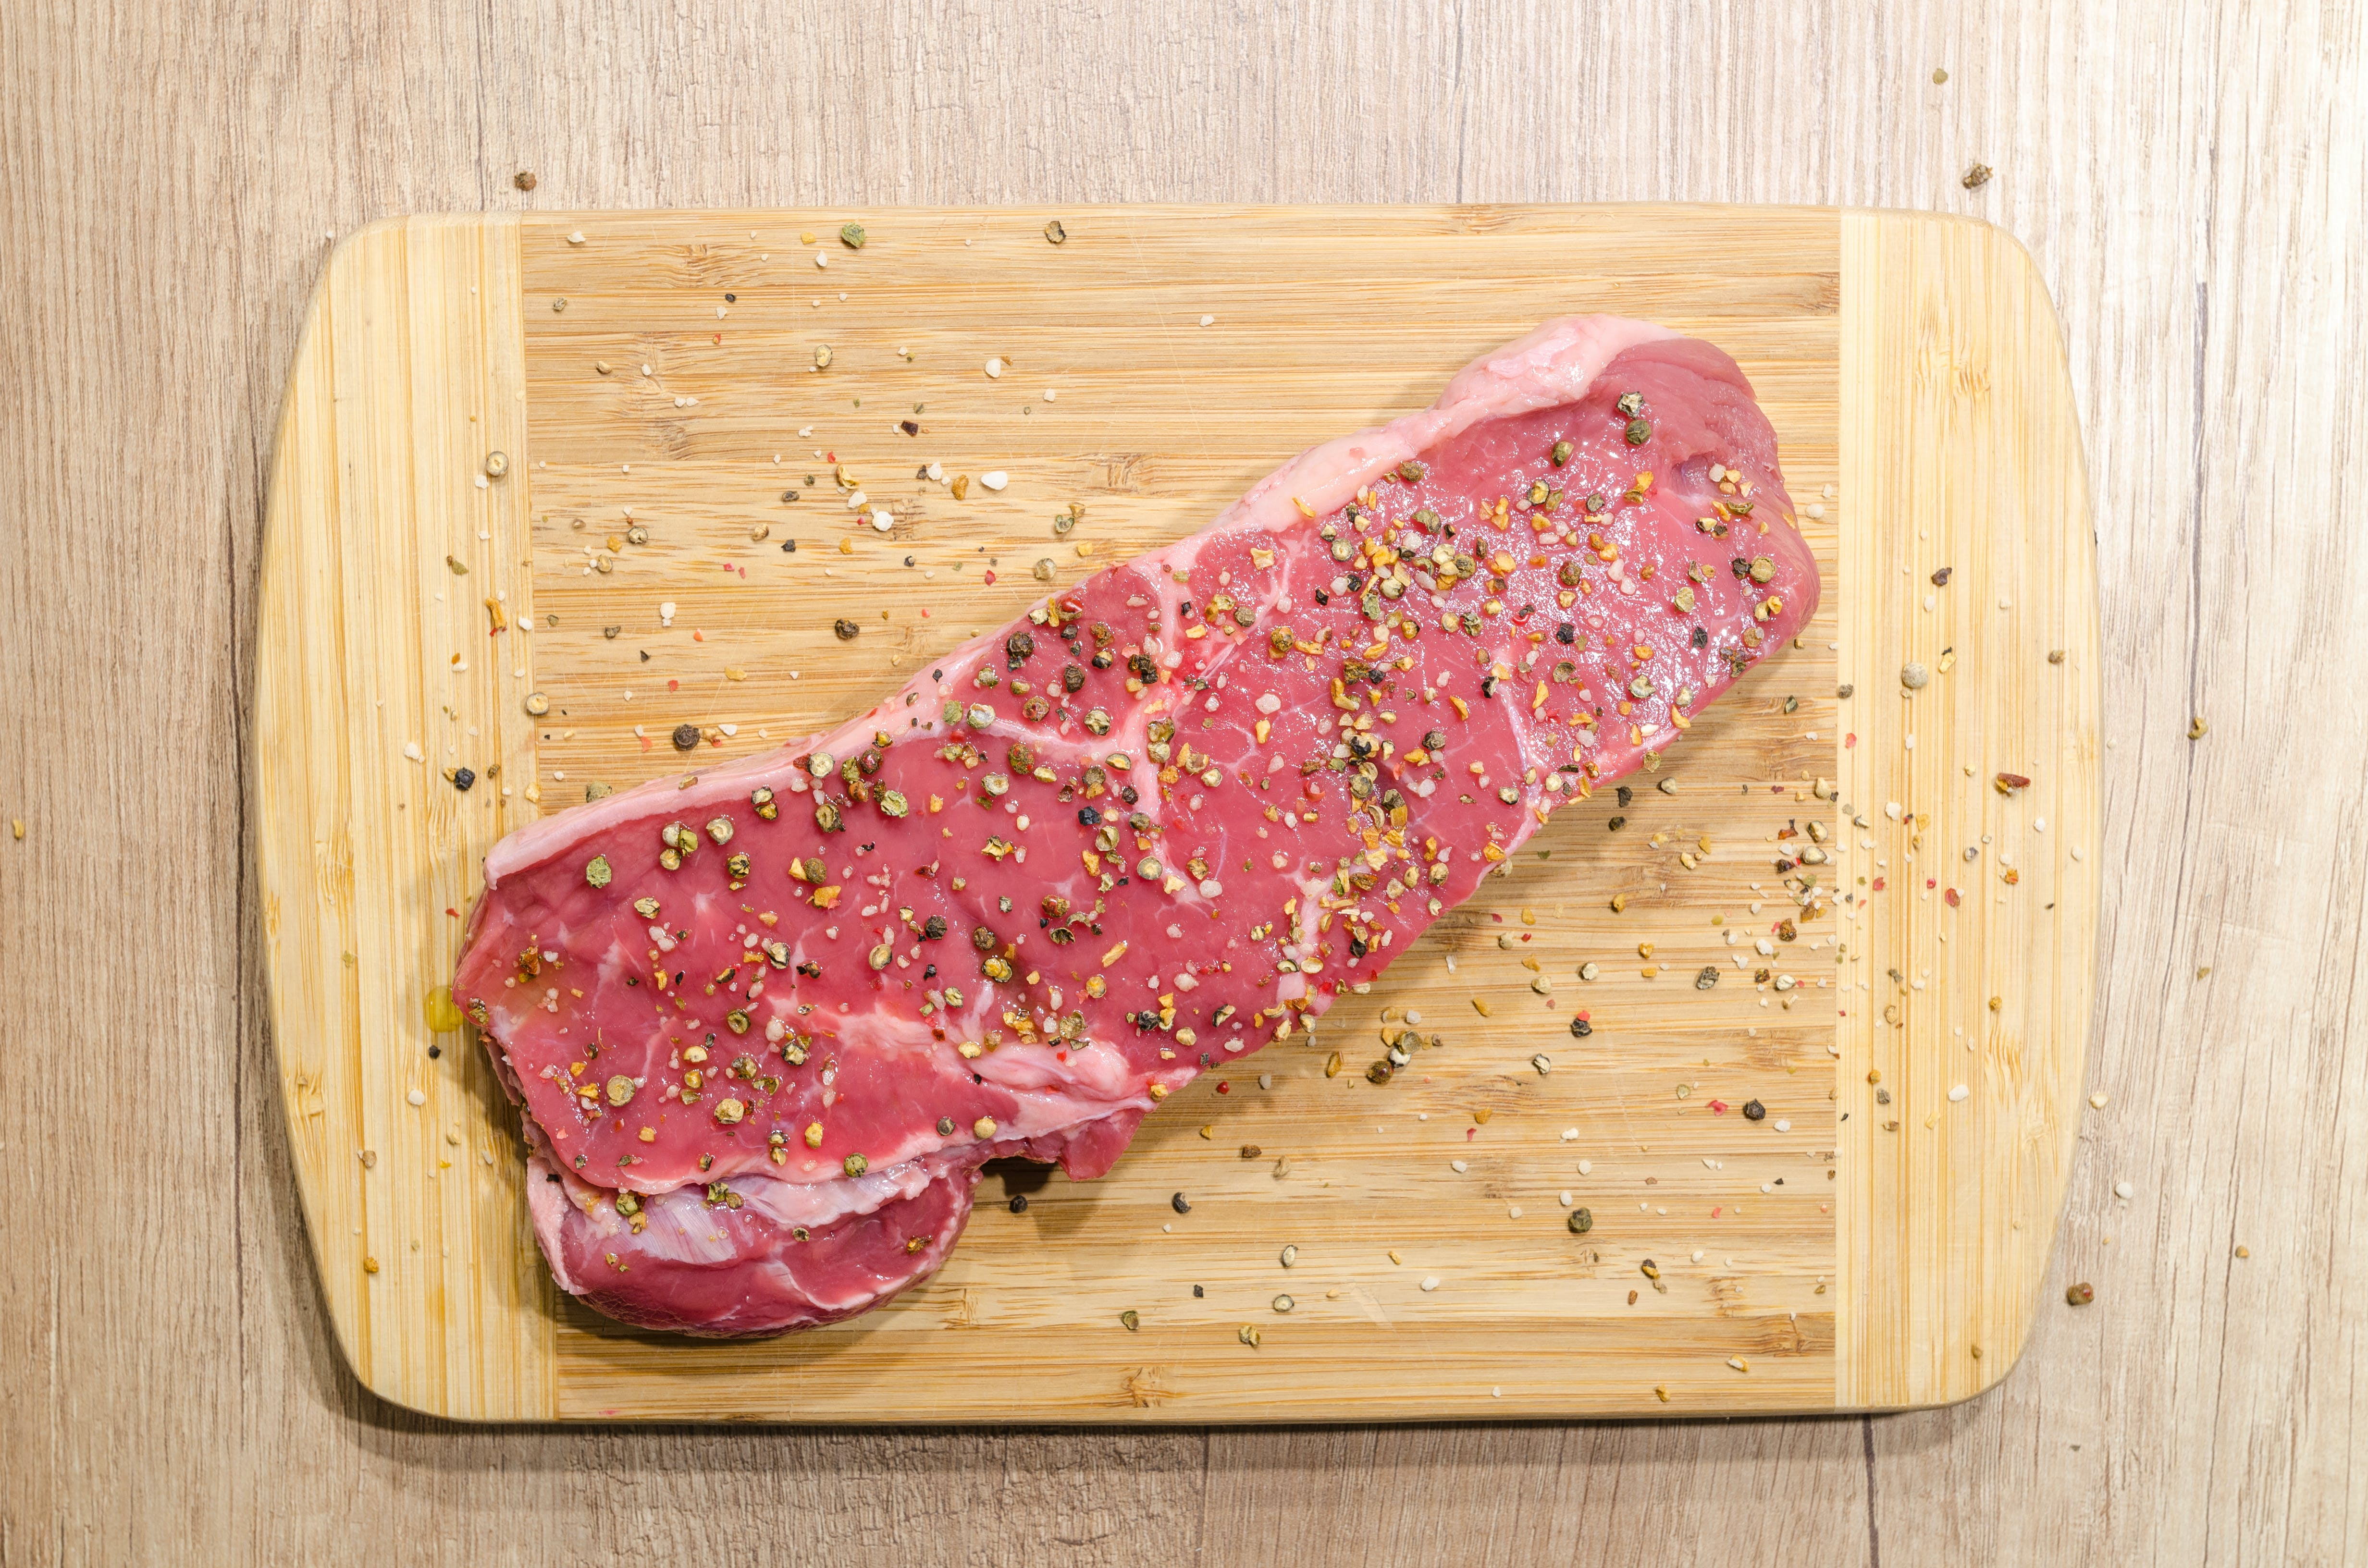 Flat Lay Photography of Slice of Meat on Top of Chopping Board Sprinkled With Ground Peppercorns